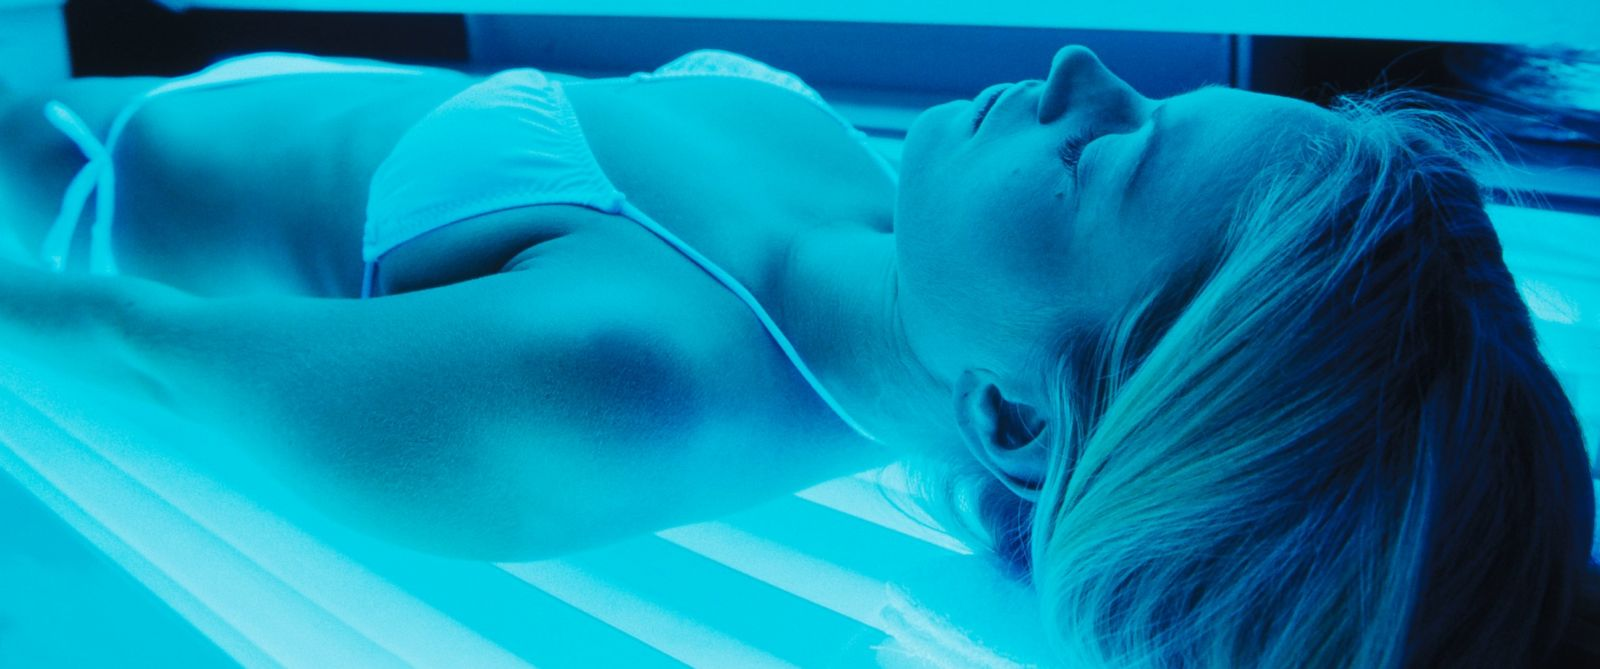 No Shortage of Tanning Beds for Students at Top Colleges ...